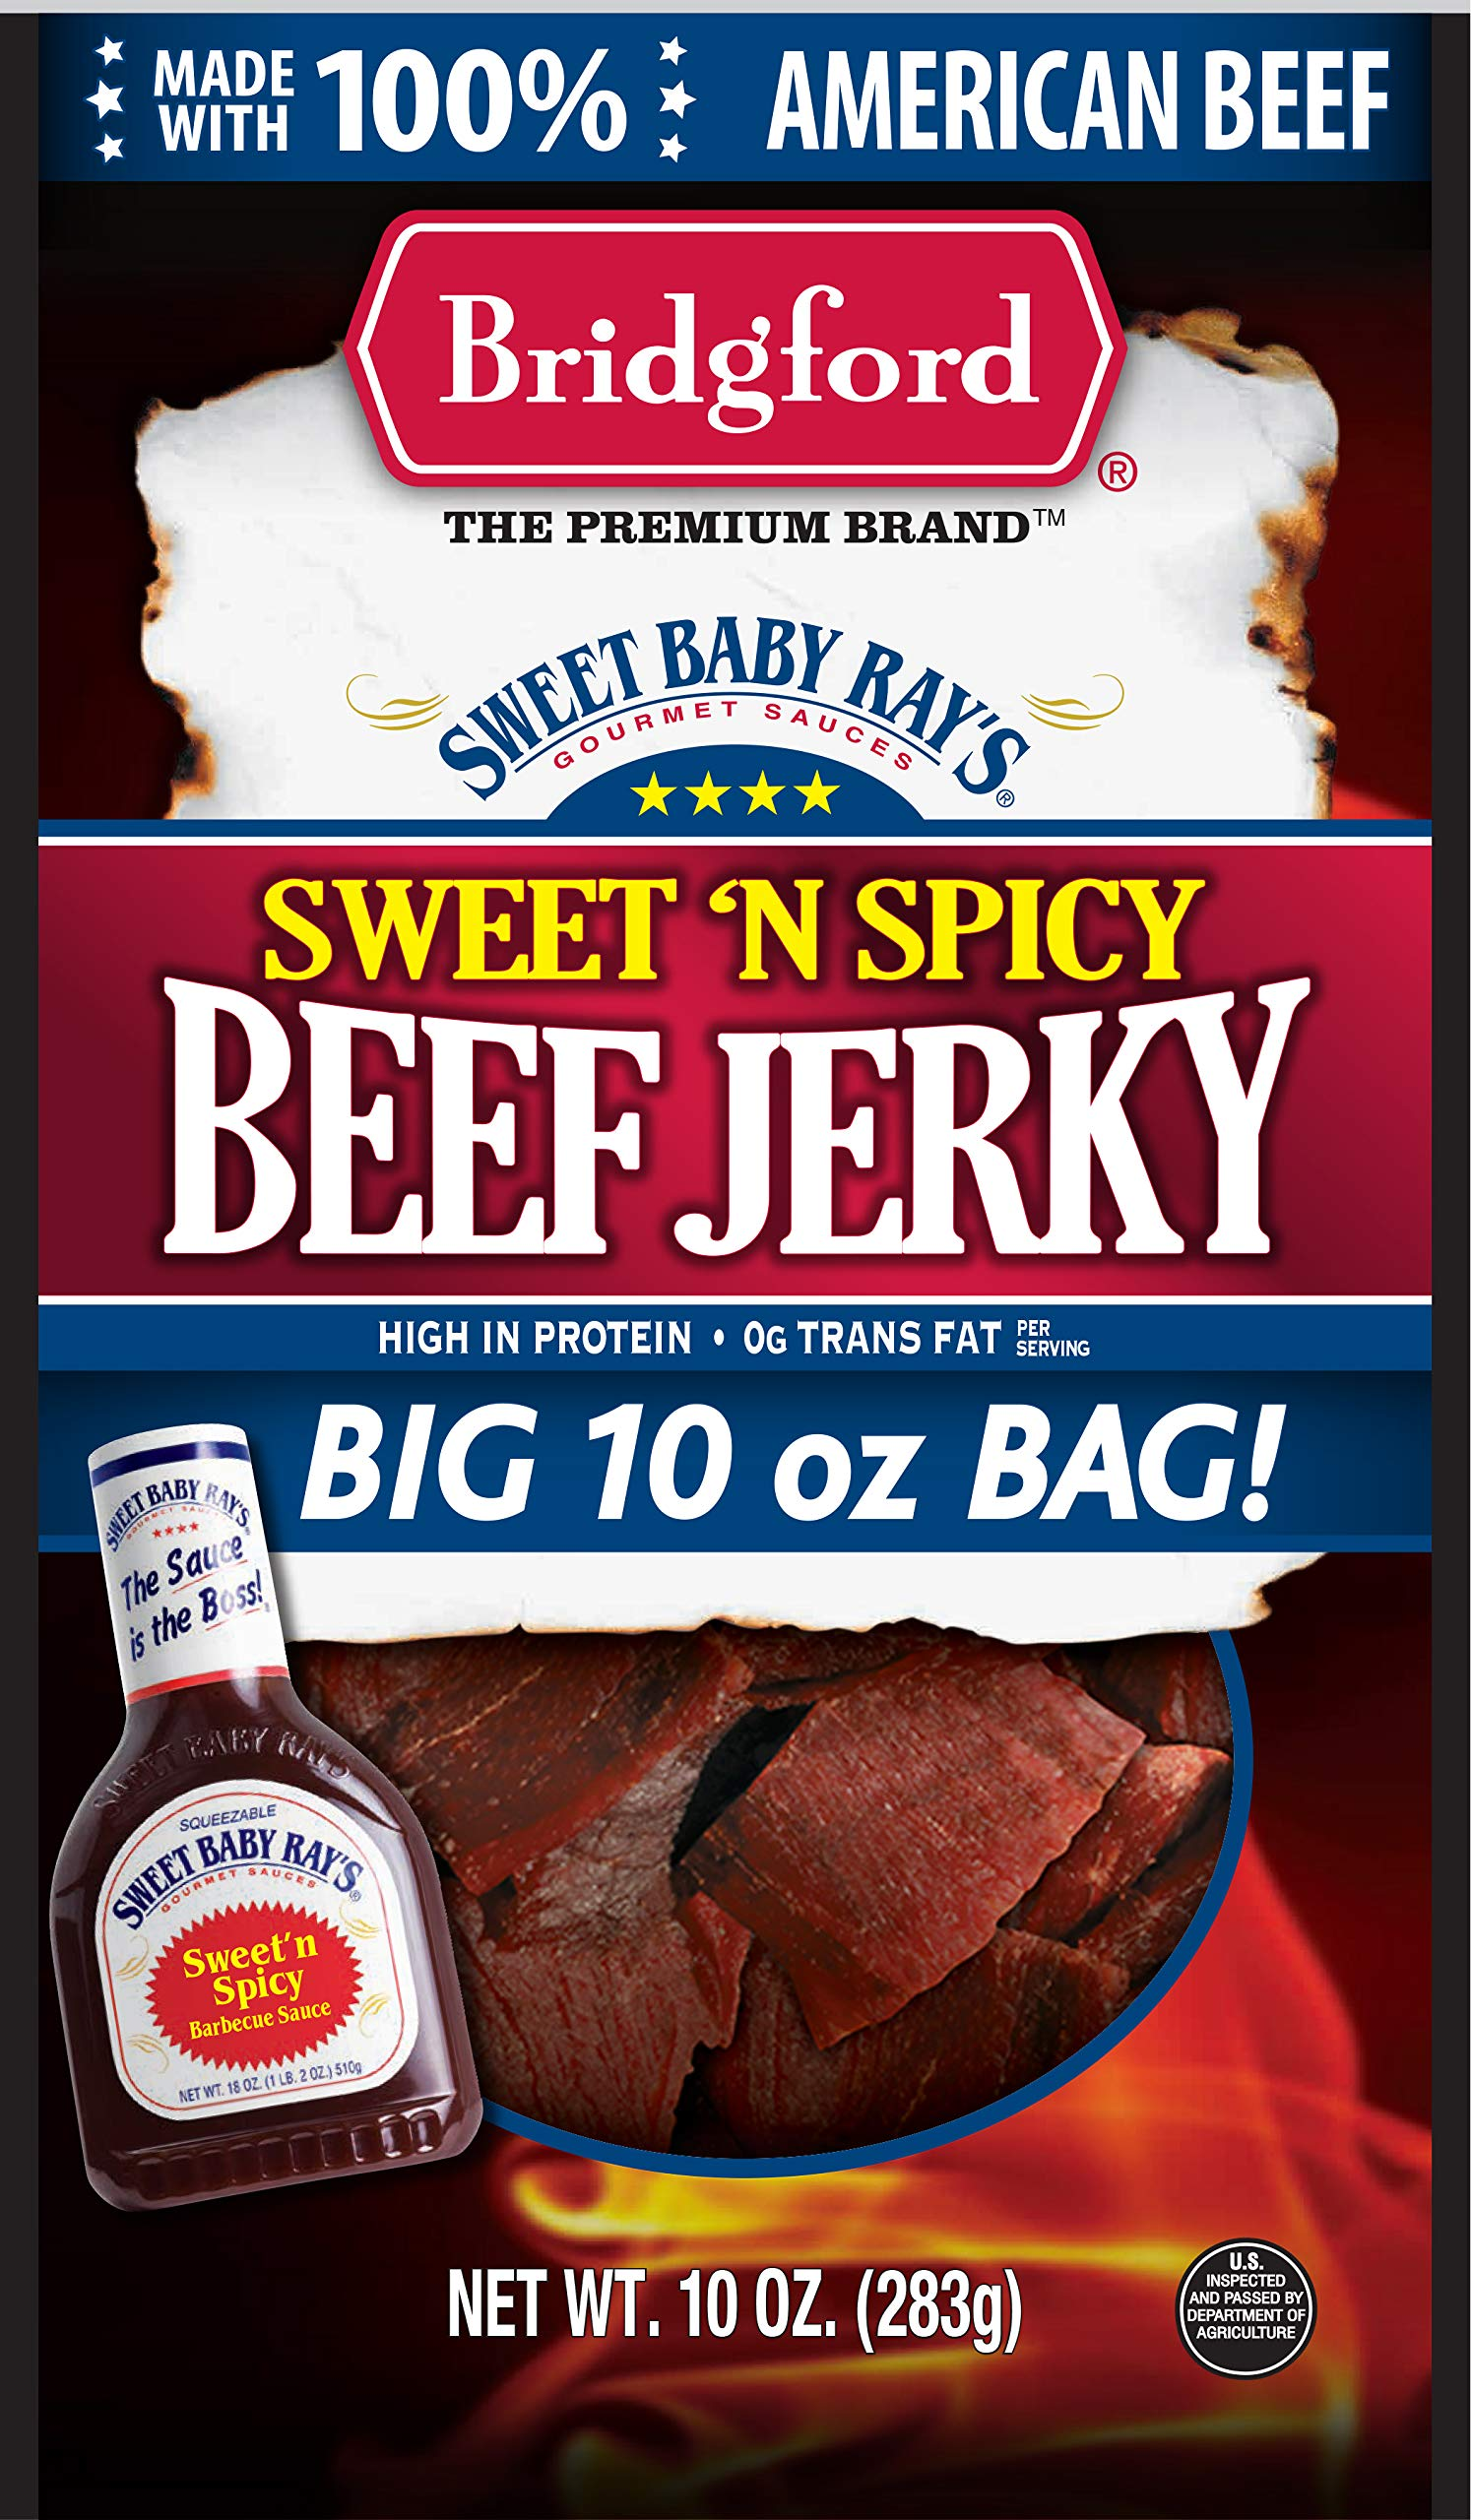 Bridgford Sweet Baby Ray's Sweet 'N Spicy Beef Jerky, High Protein, Zero Trans Fat, Made With 100% American Beef, 10 Oz, Pack of 3